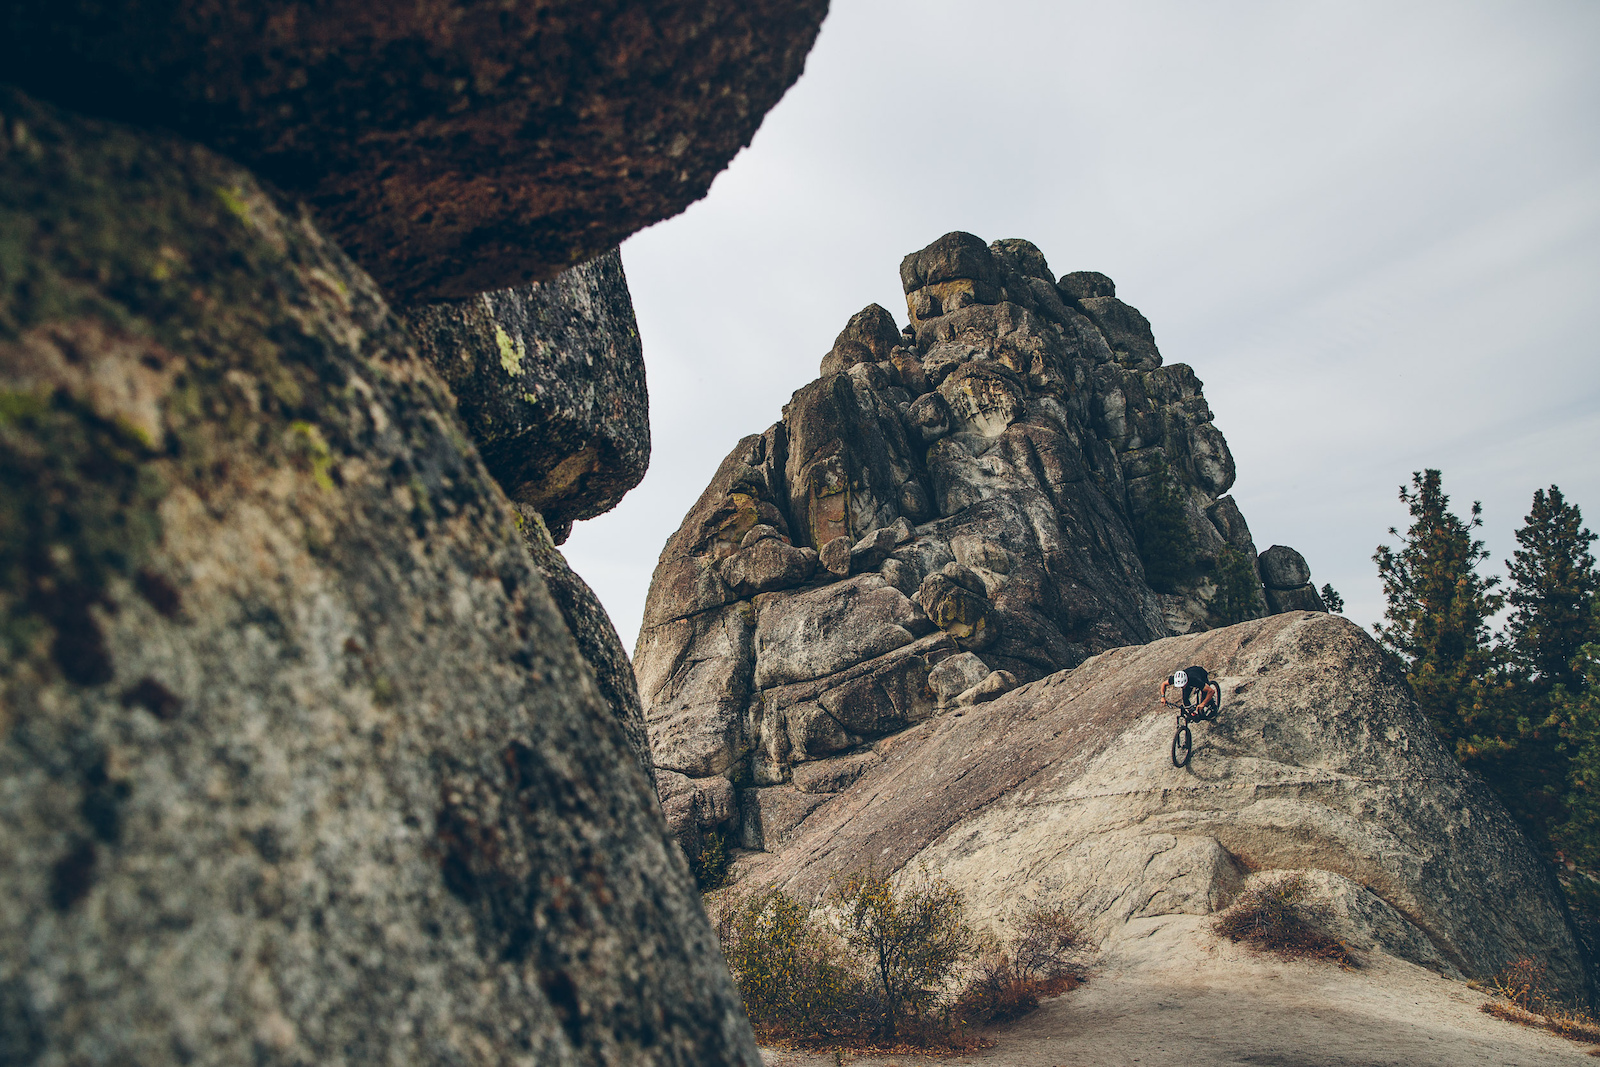 Braydon Bringhurts playing around on the rock rollers on the iconic StackRock Trail